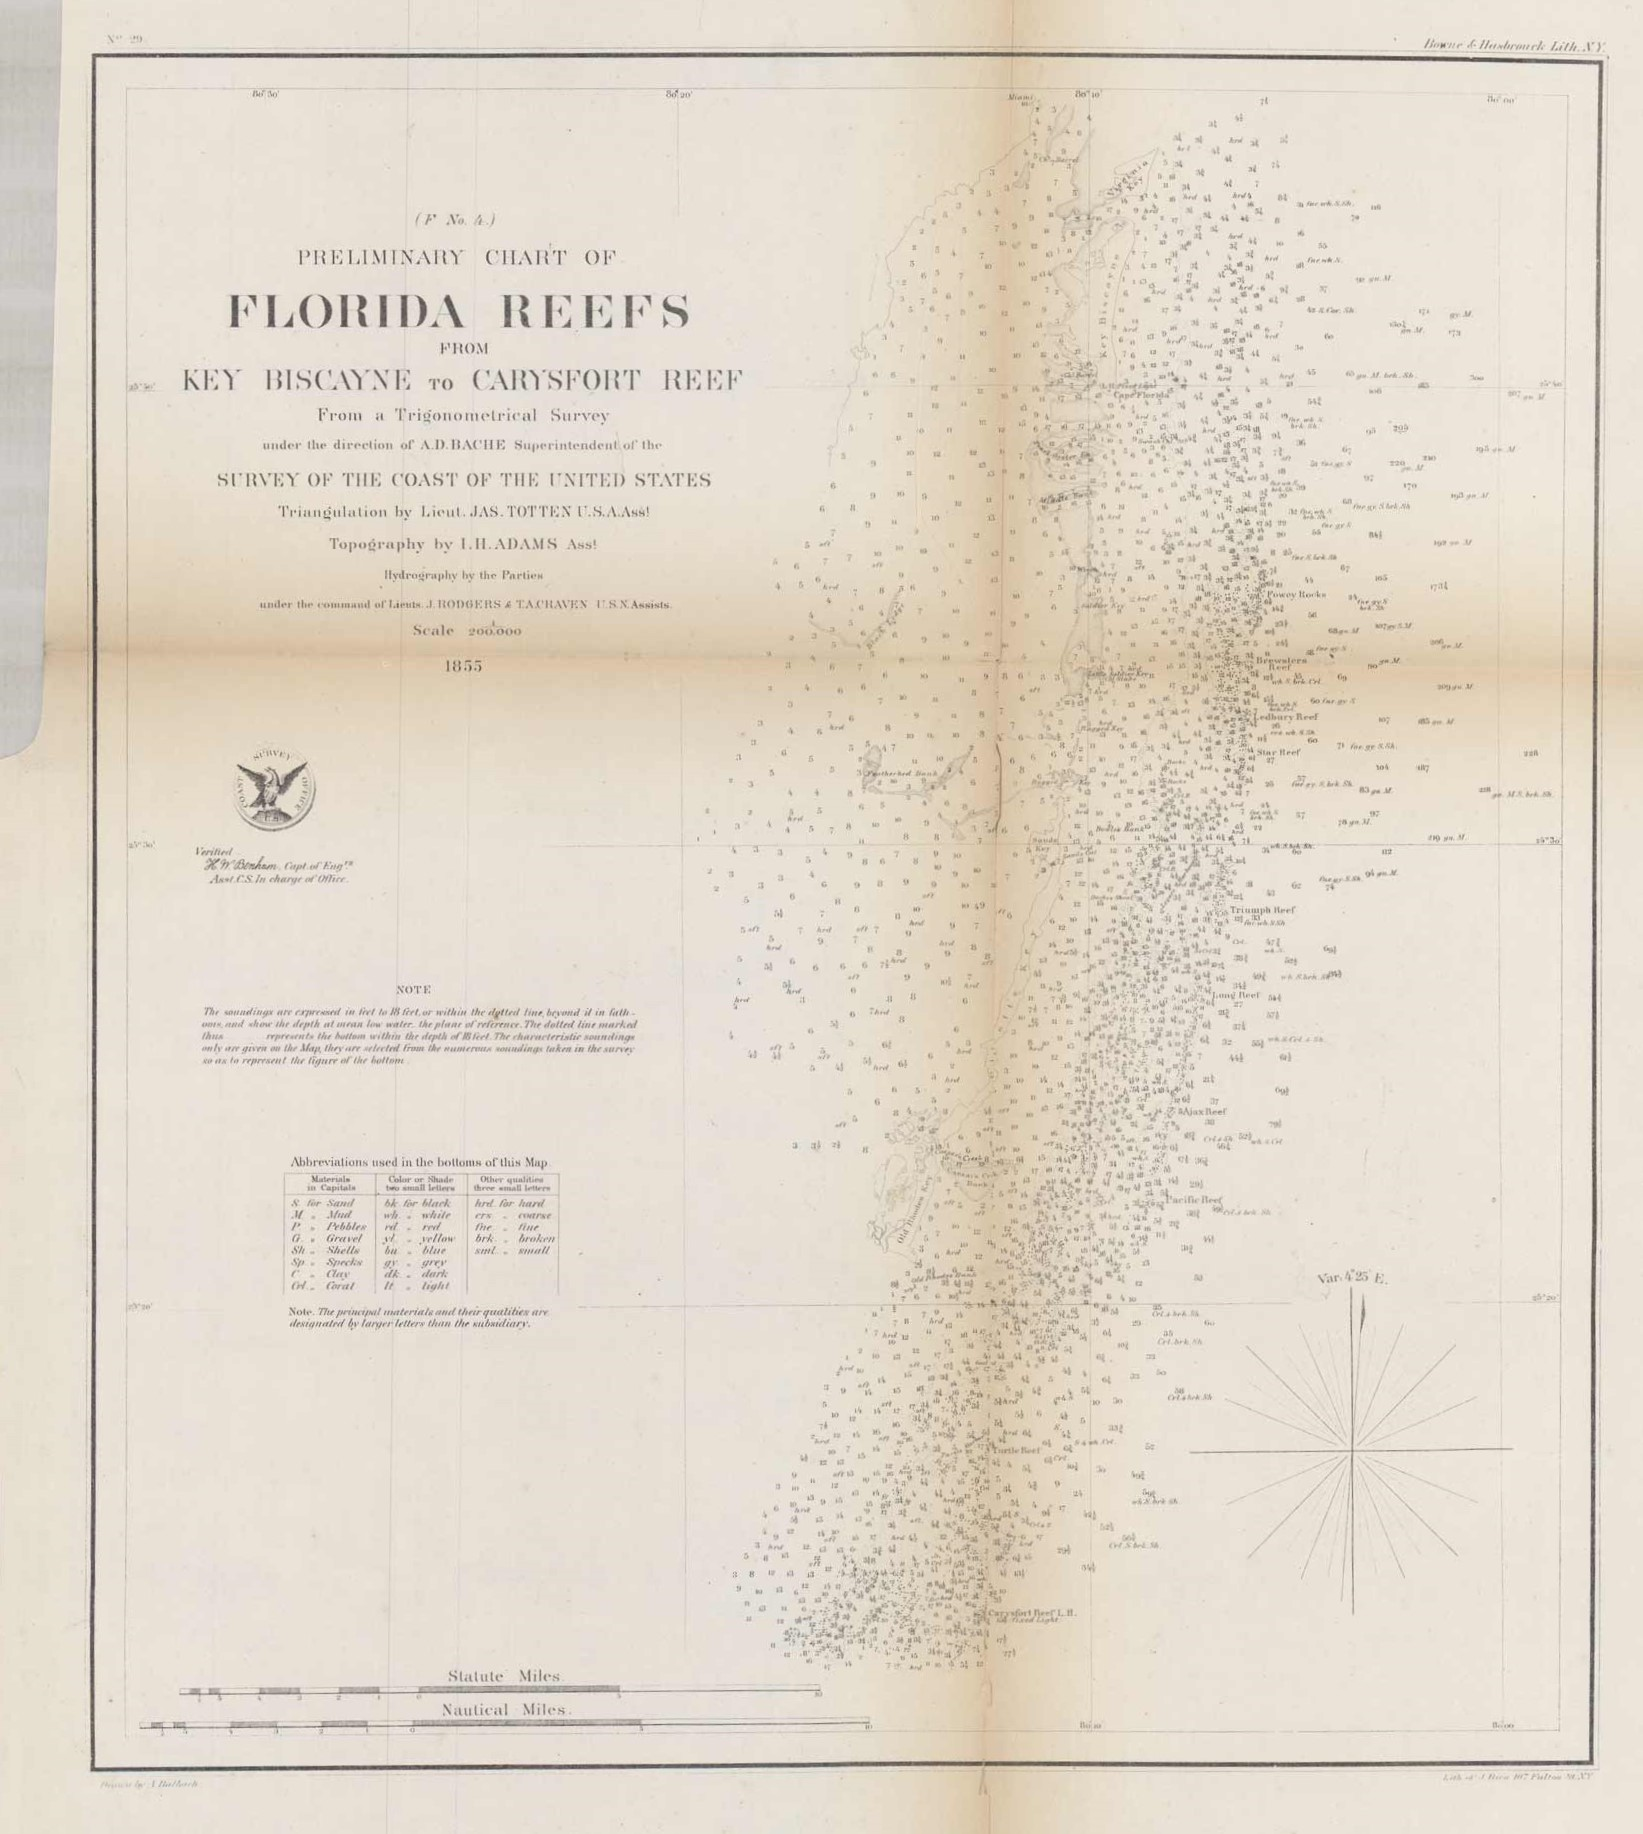 U.S. Coast Survey Preliminary Chart of Florida Reefs from Key Biscayne to Carysfort Reef